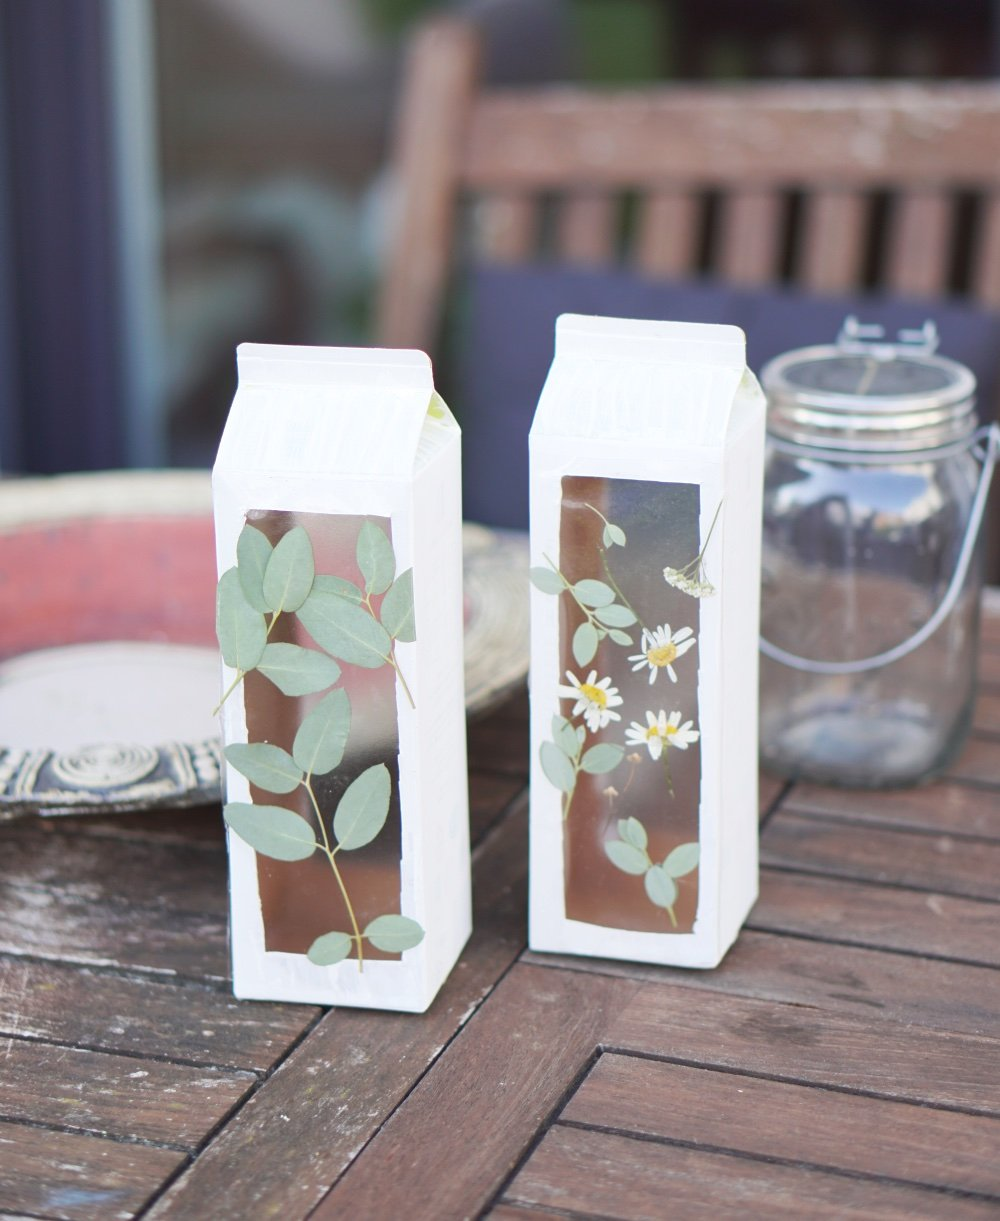 upcycling tetrapak laterne 2